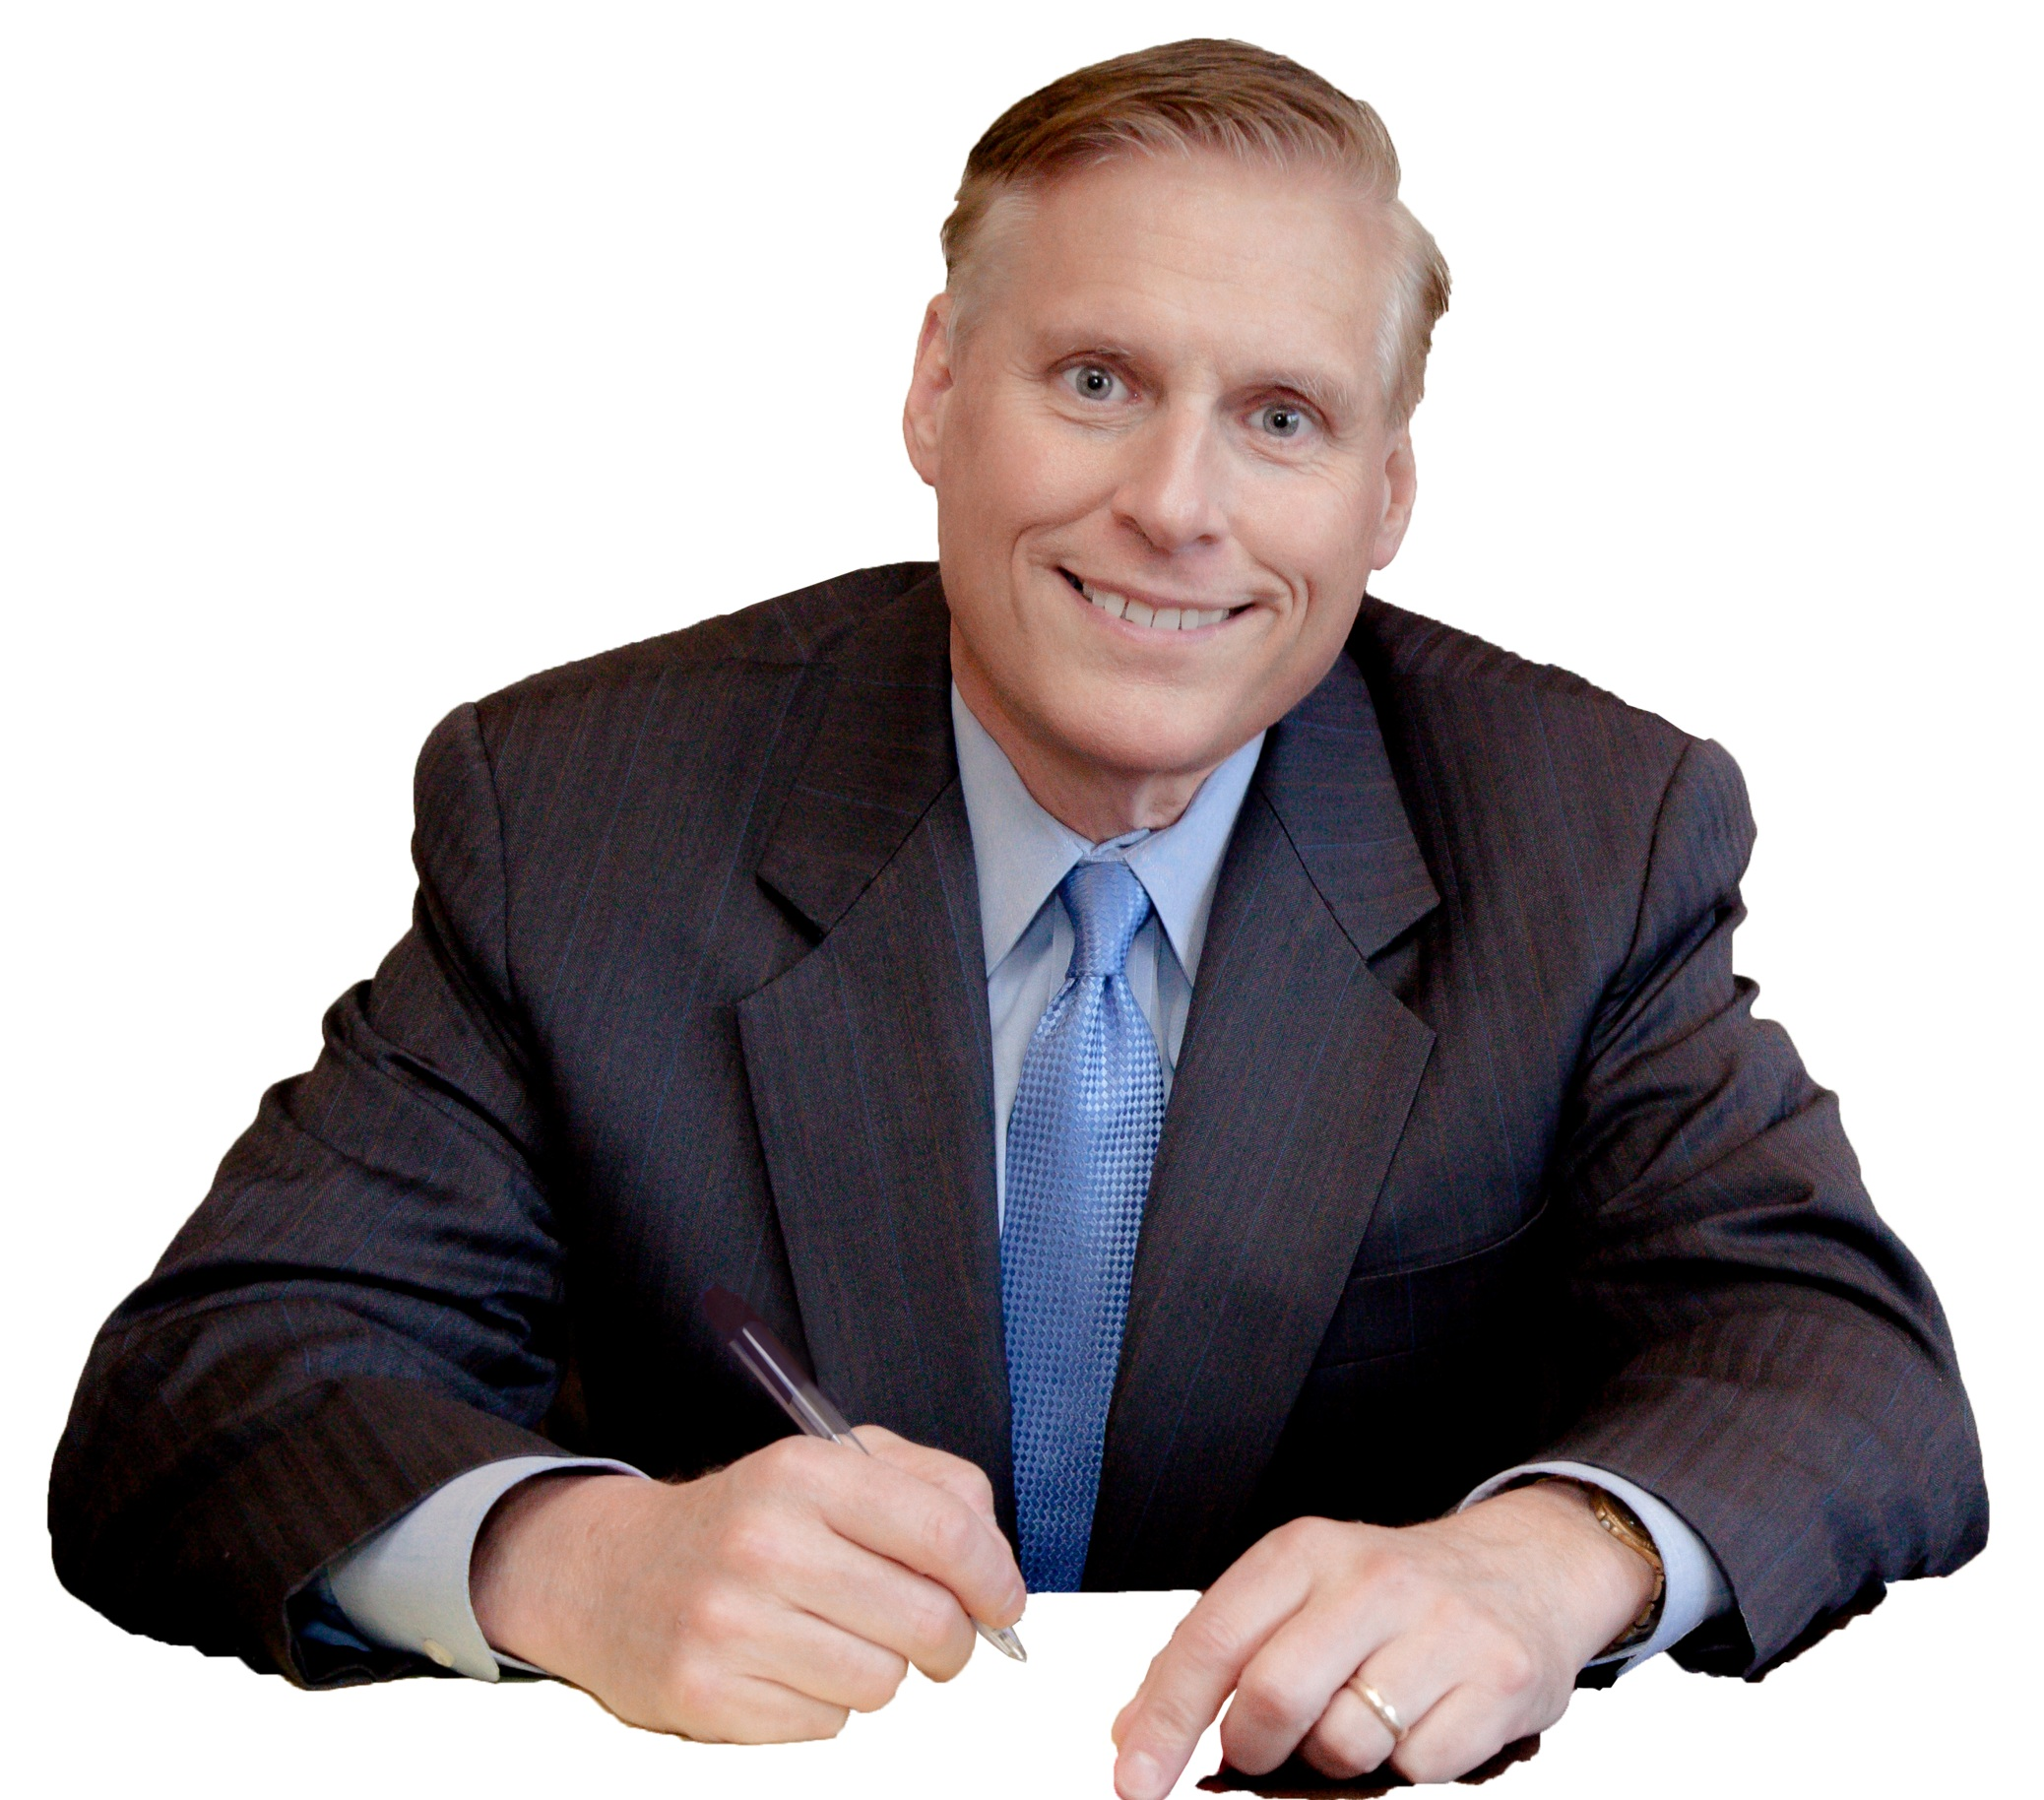 Helping You Get The Benefits You Deserve - Todd R. Renda, Attorney at Law